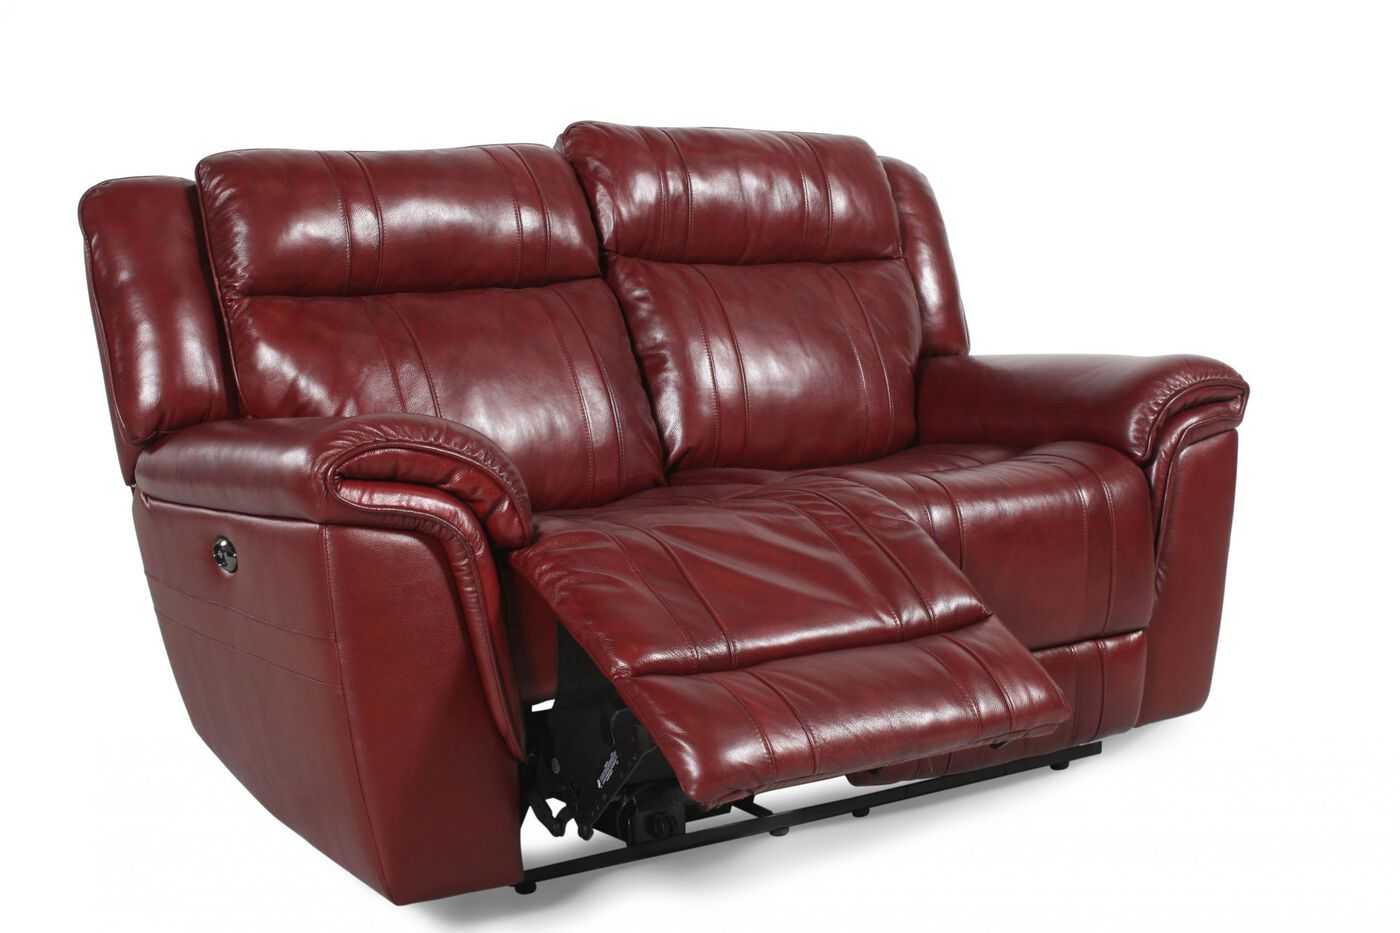 Boulevard chili pepper burgundy reclining loveseat mathis brothers furniture Burgundy leather loveseat